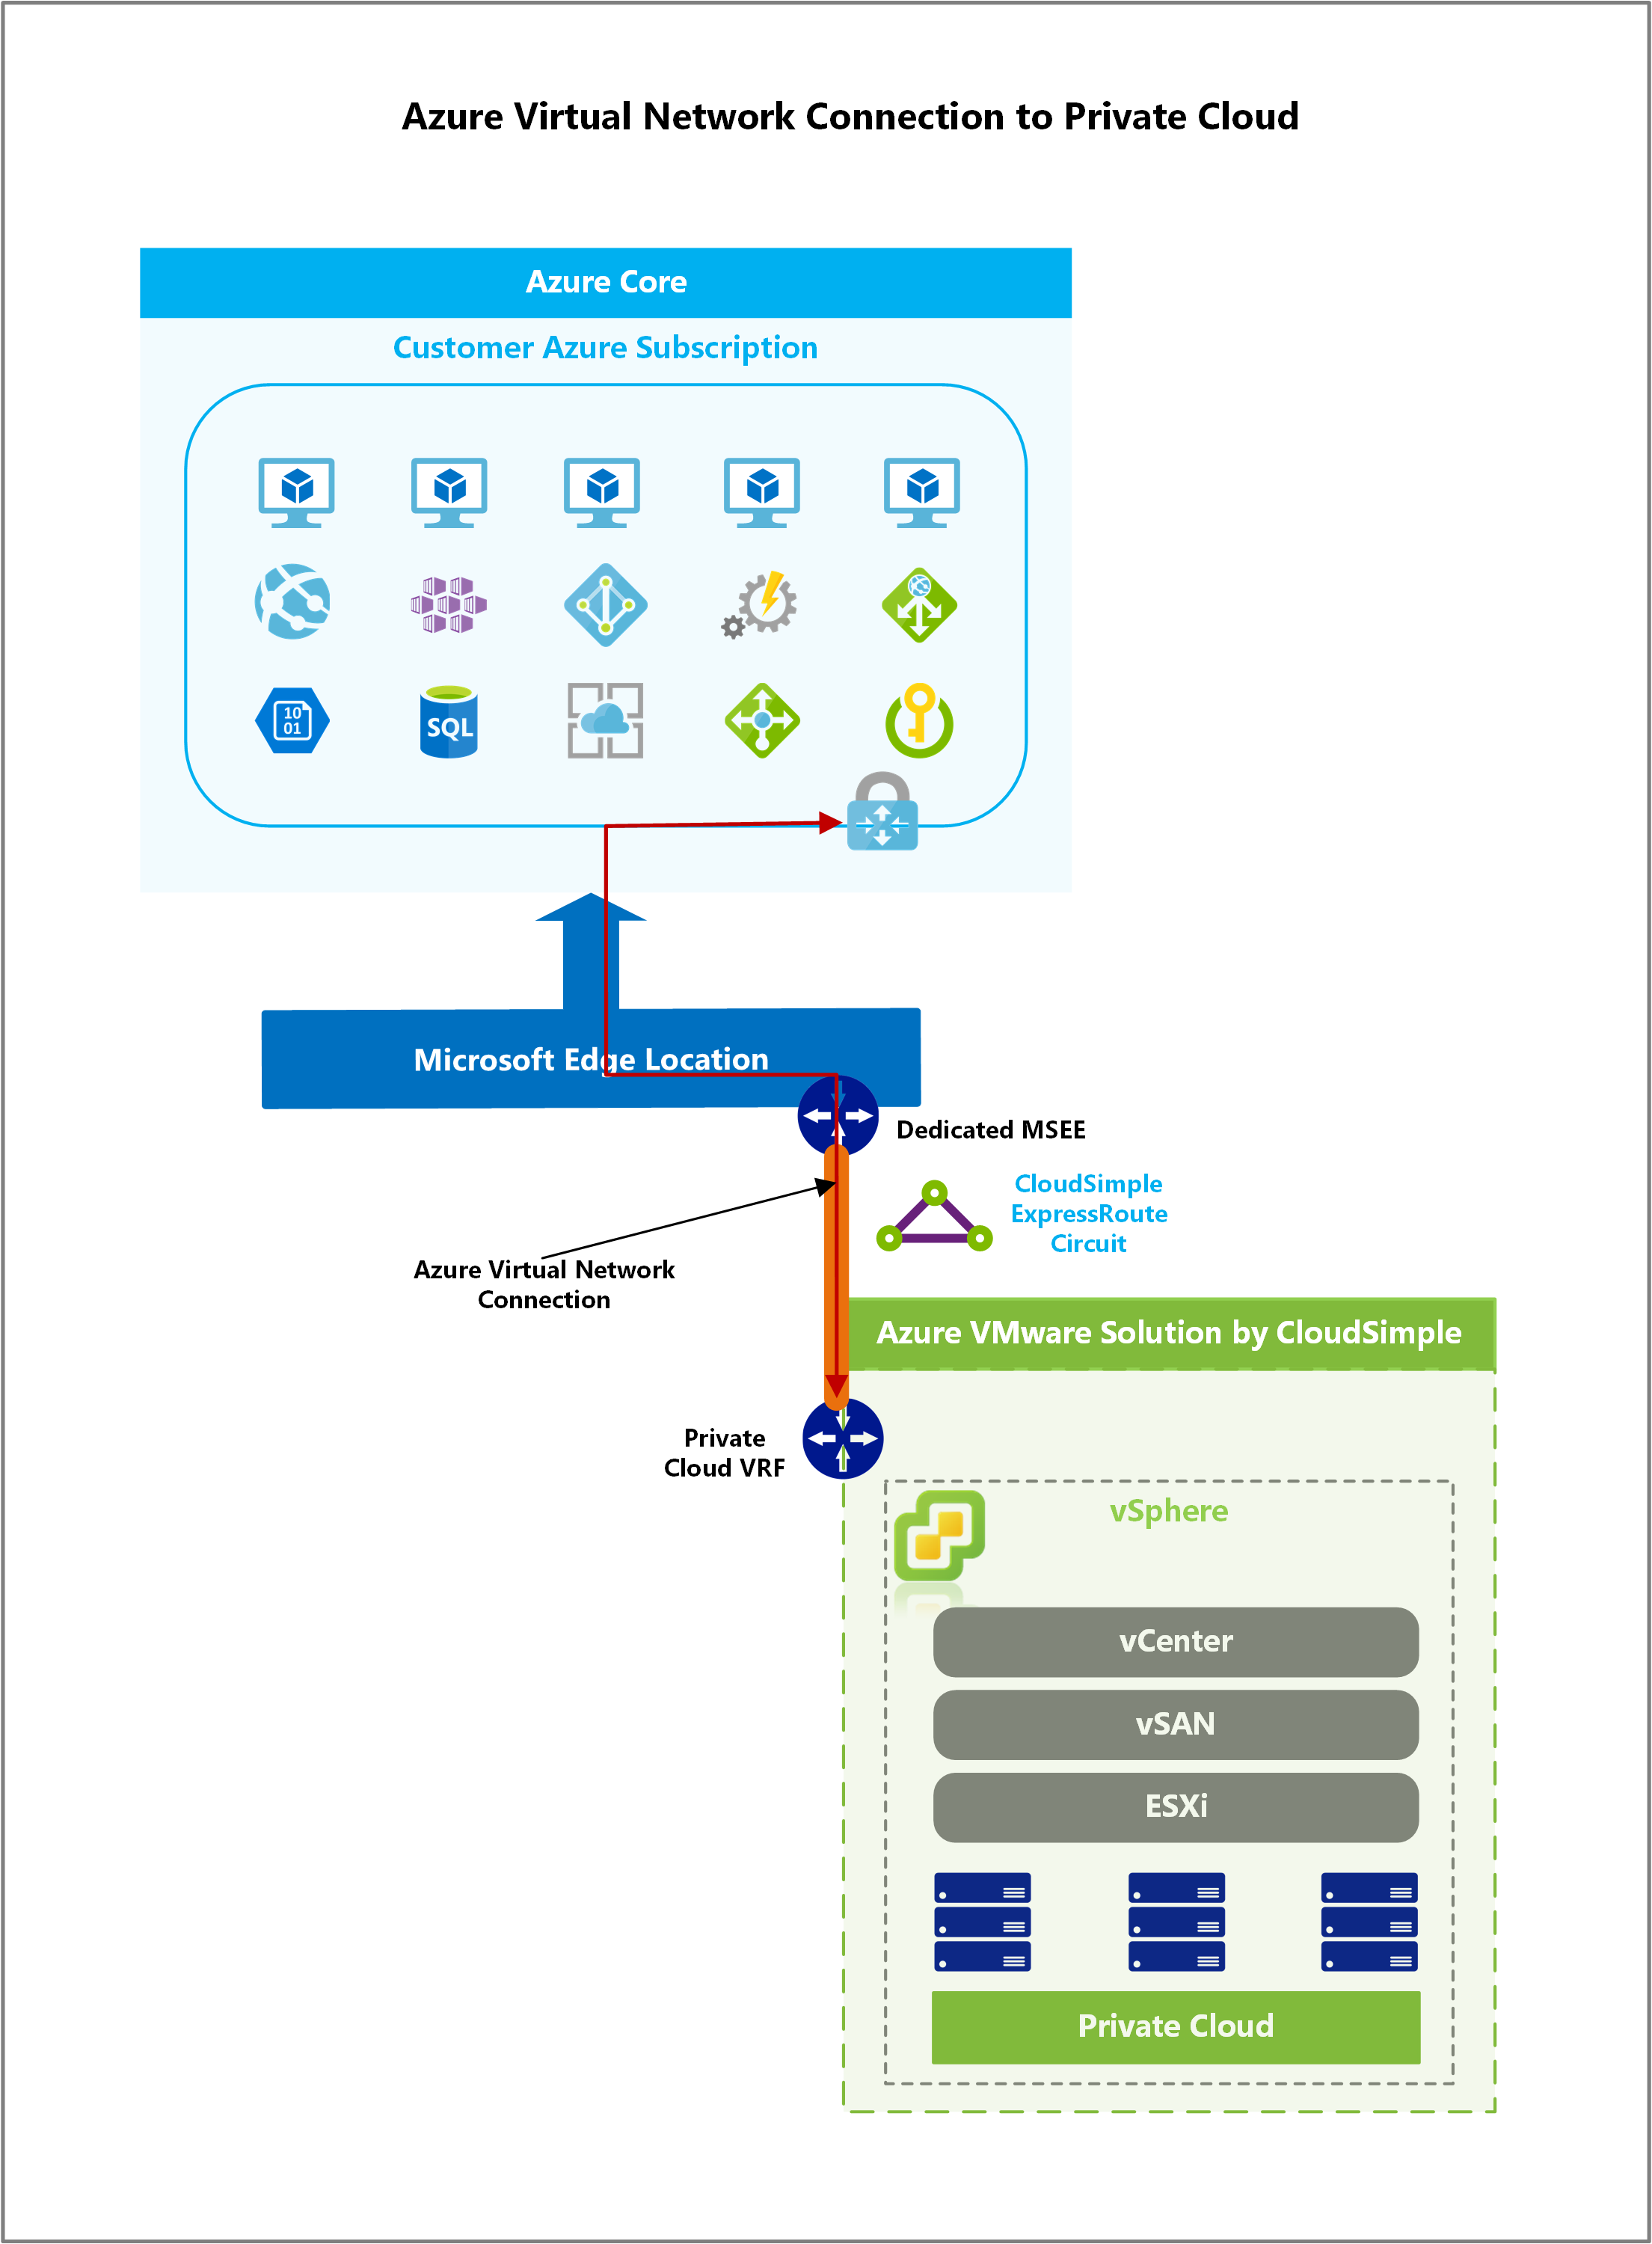 VMware Solution by CloudSimple - Azure network connections